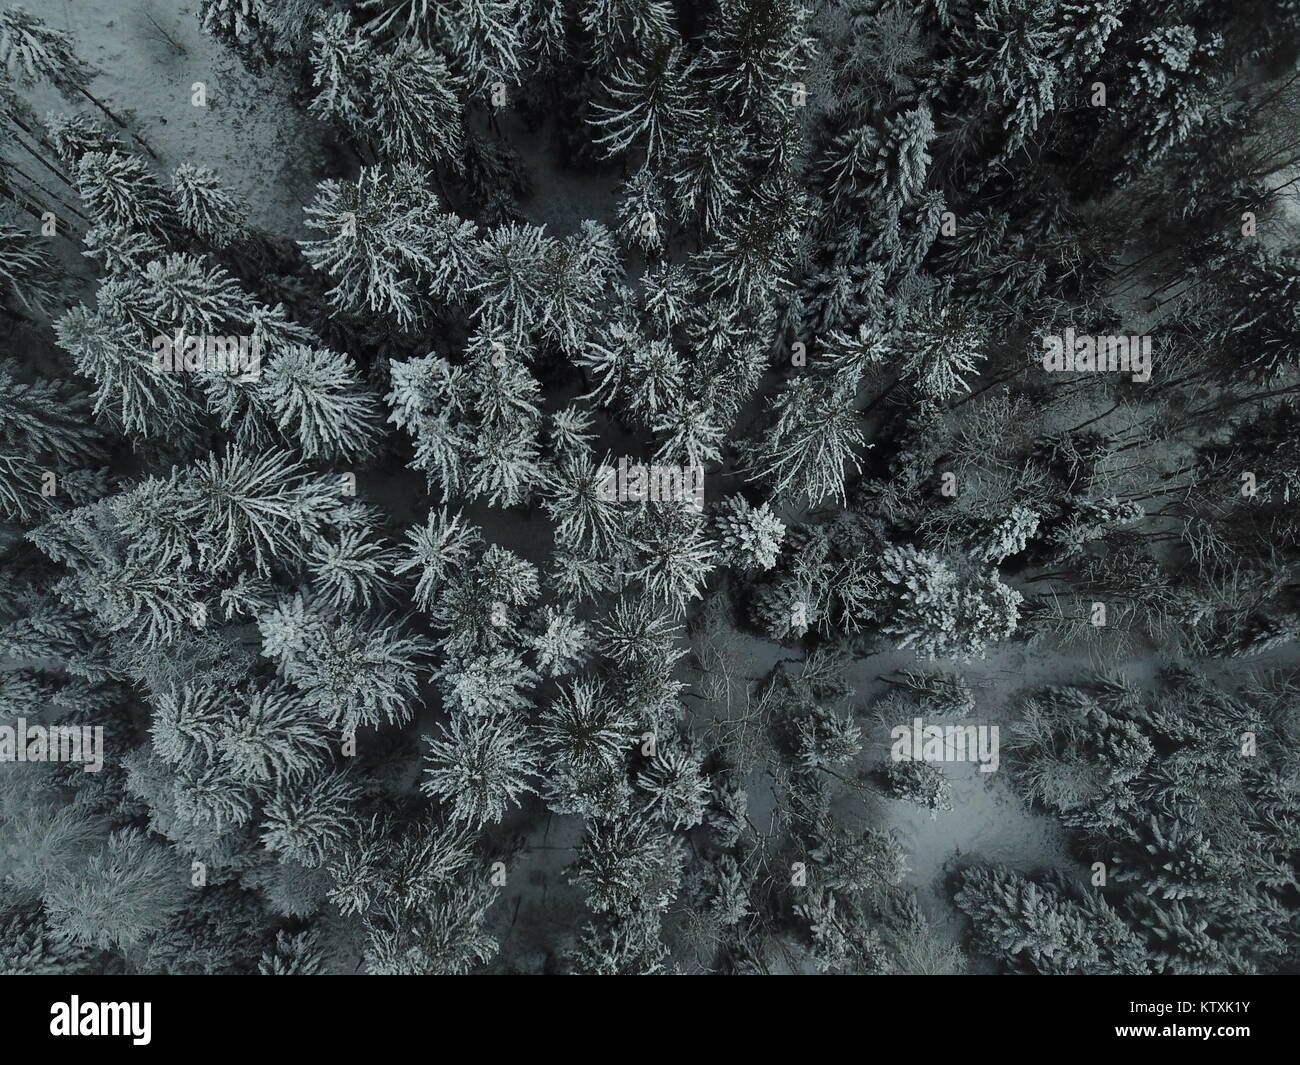 Trees from by drone in winter time - Stock Image